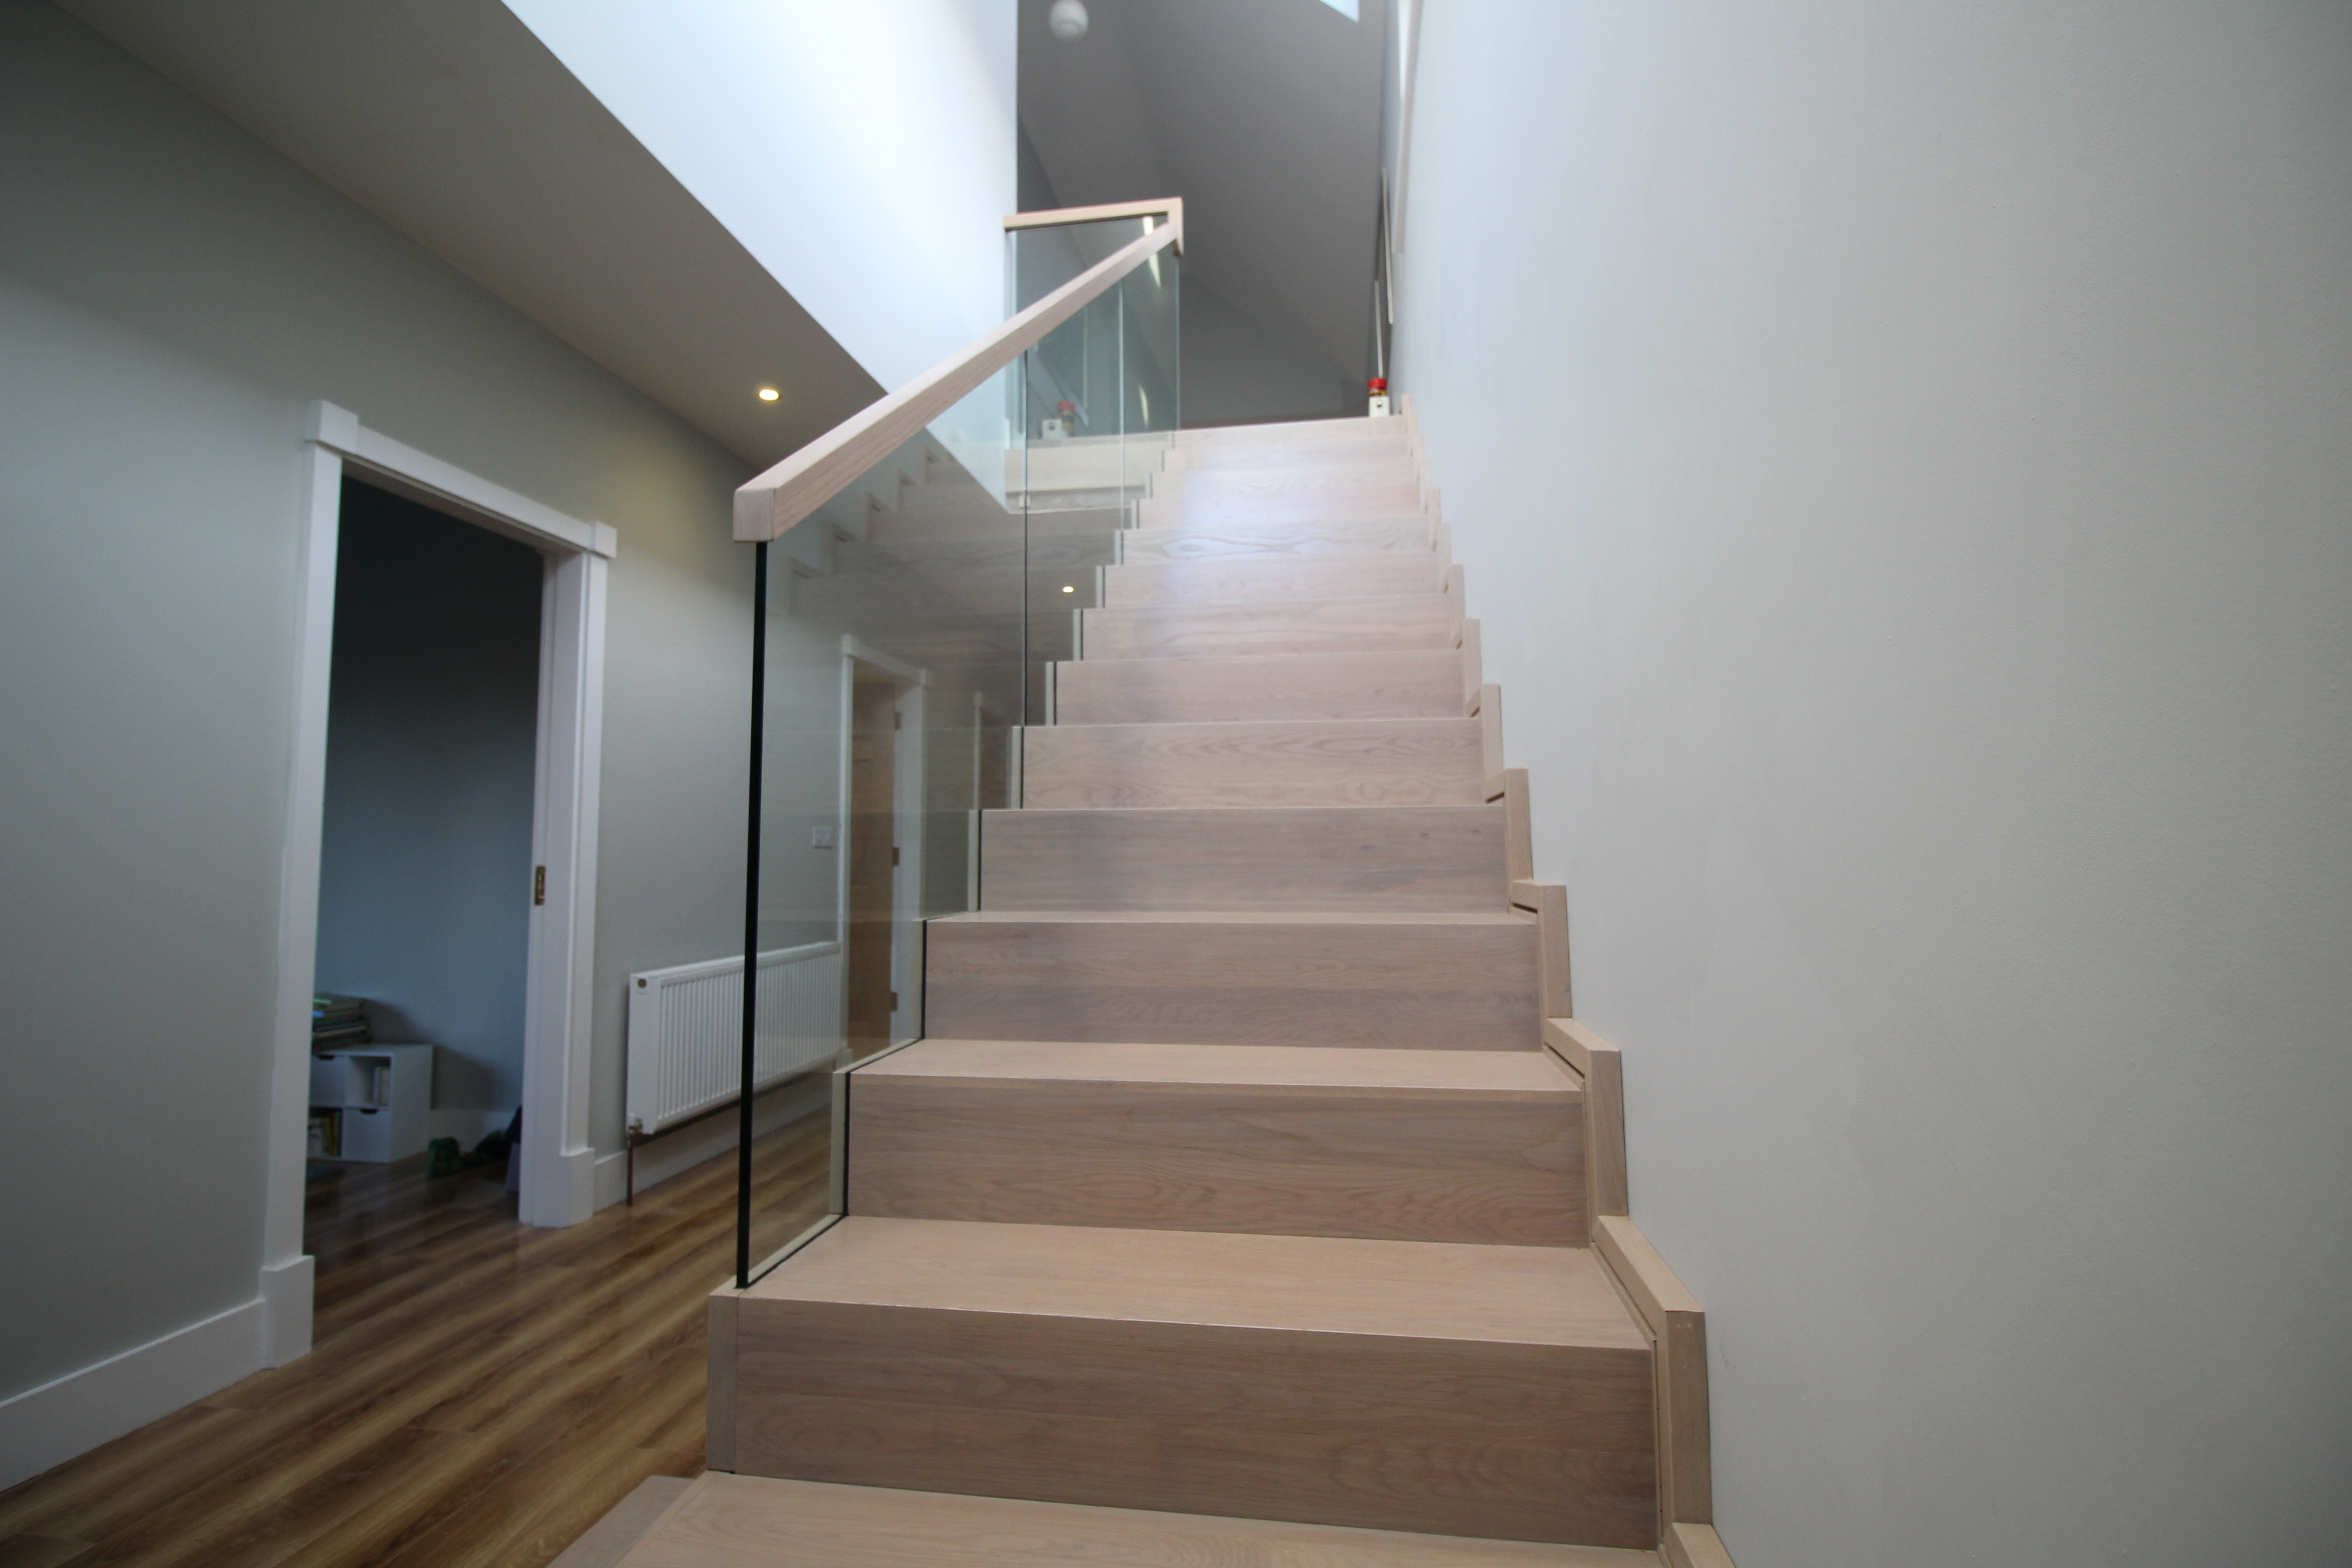 Modern Cut String Stairs By Jea O Bespoke Stair Design In